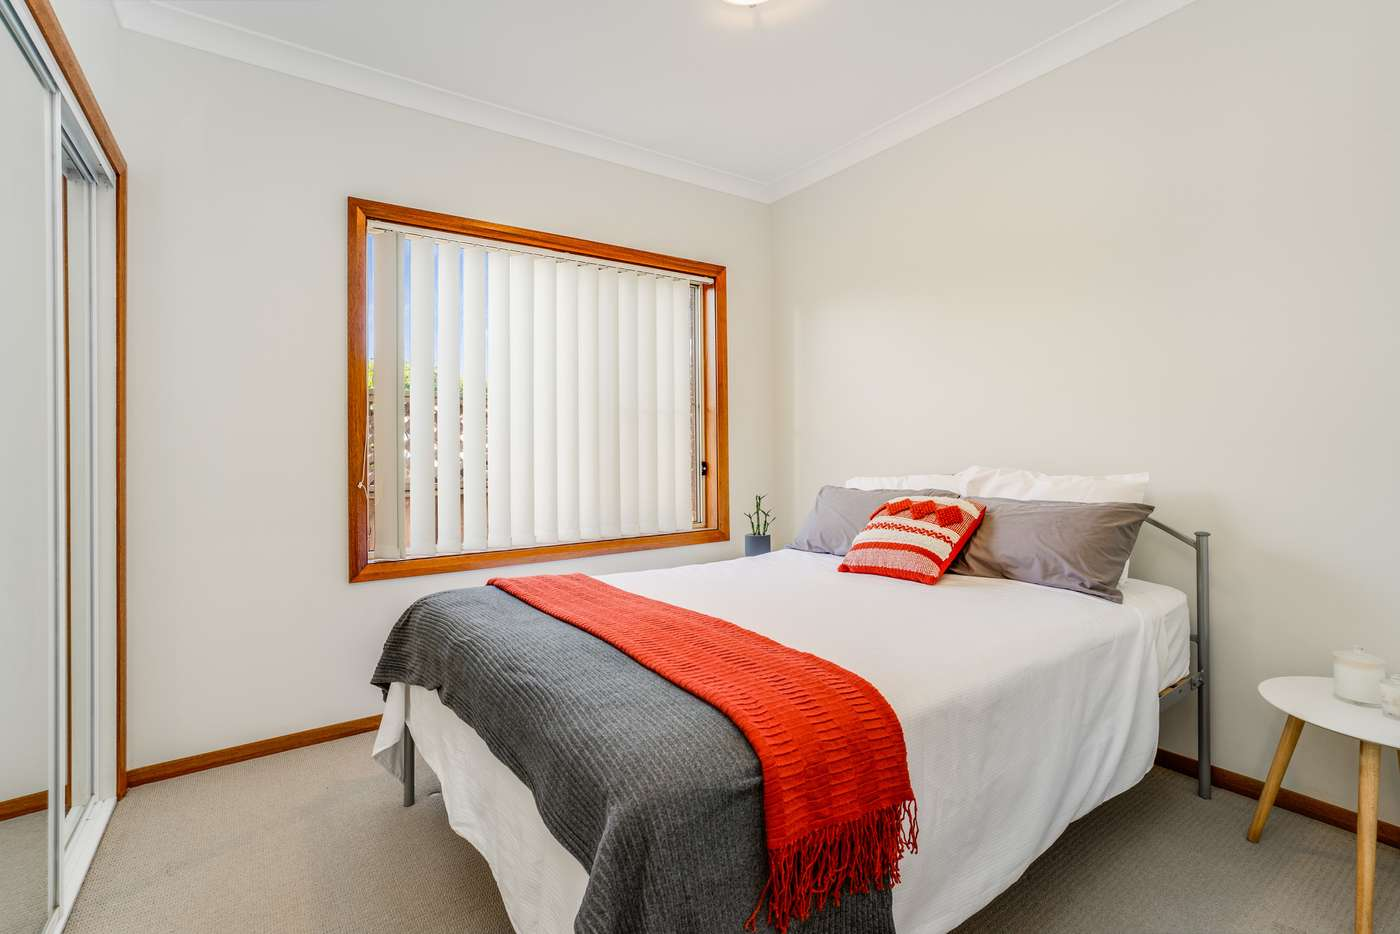 Sixth view of Homely villa listing, 1/131a St James Road, New Lambton NSW 2305